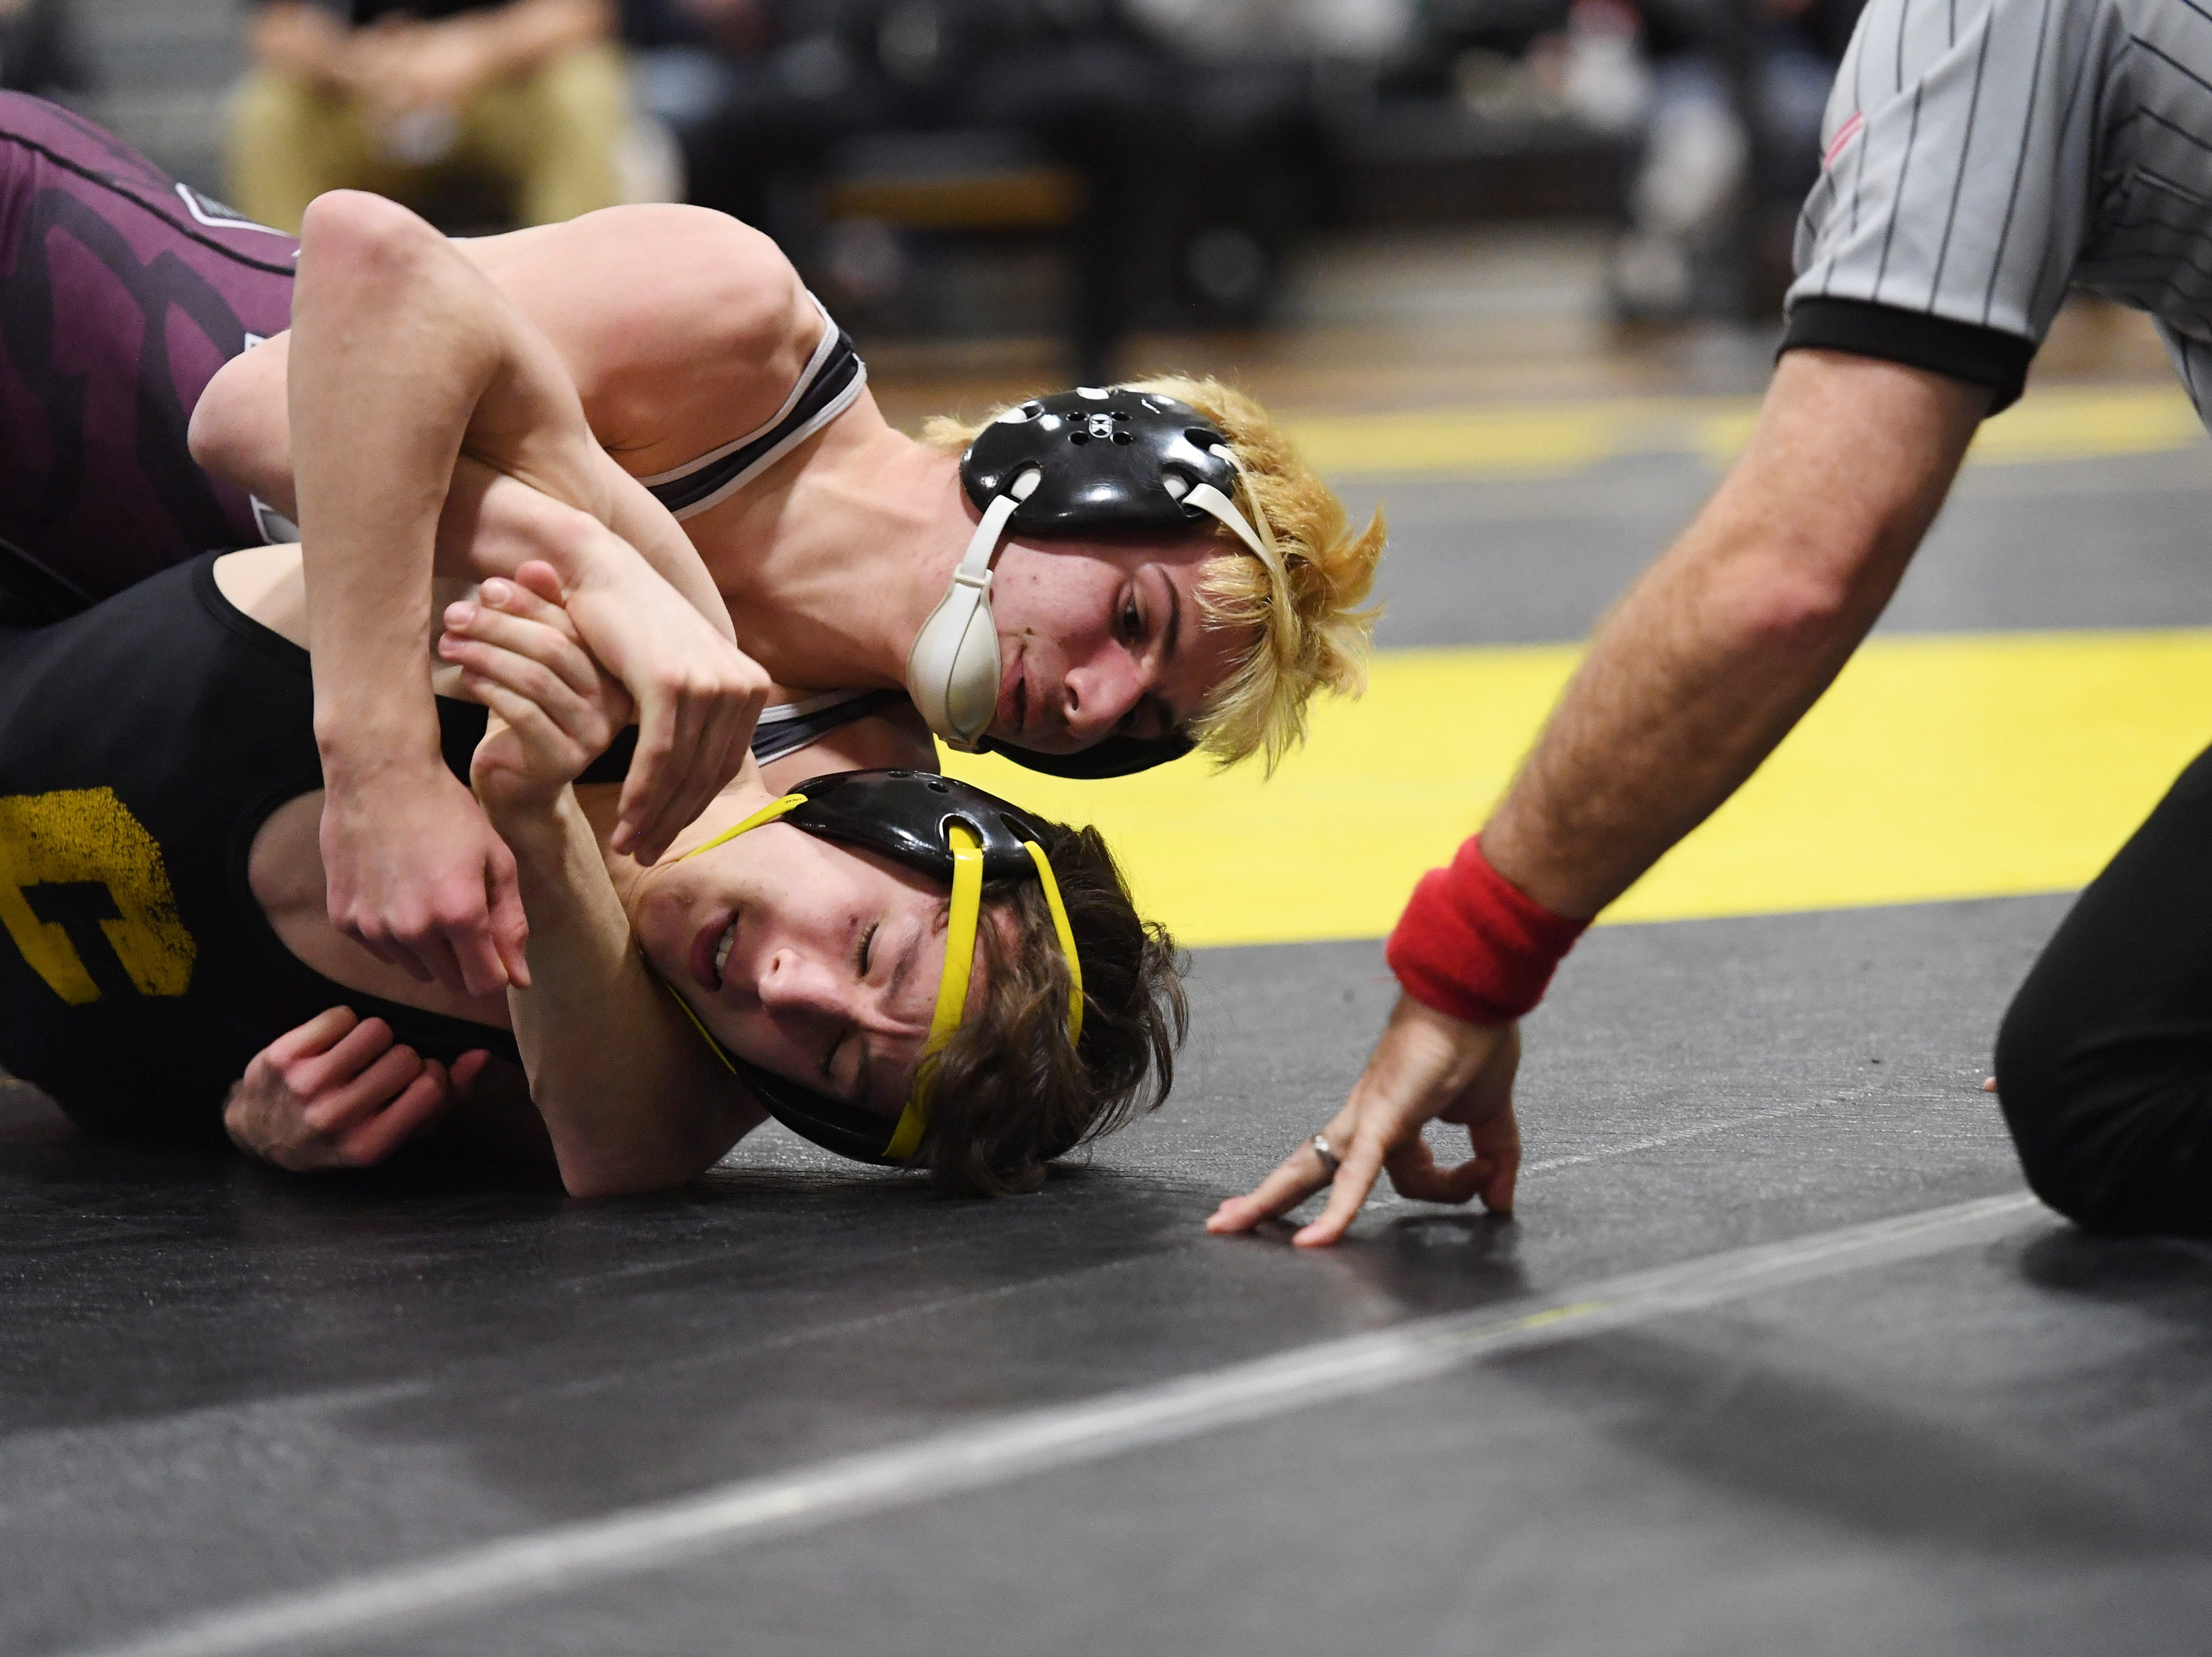 Region 1 wrestling tournament at West Milford High School on Thursday, February 21, 2019. JoJo LoTruglio (Newton) on his way to defeating Owen Ross (Cresskill) in their 126 pound match.